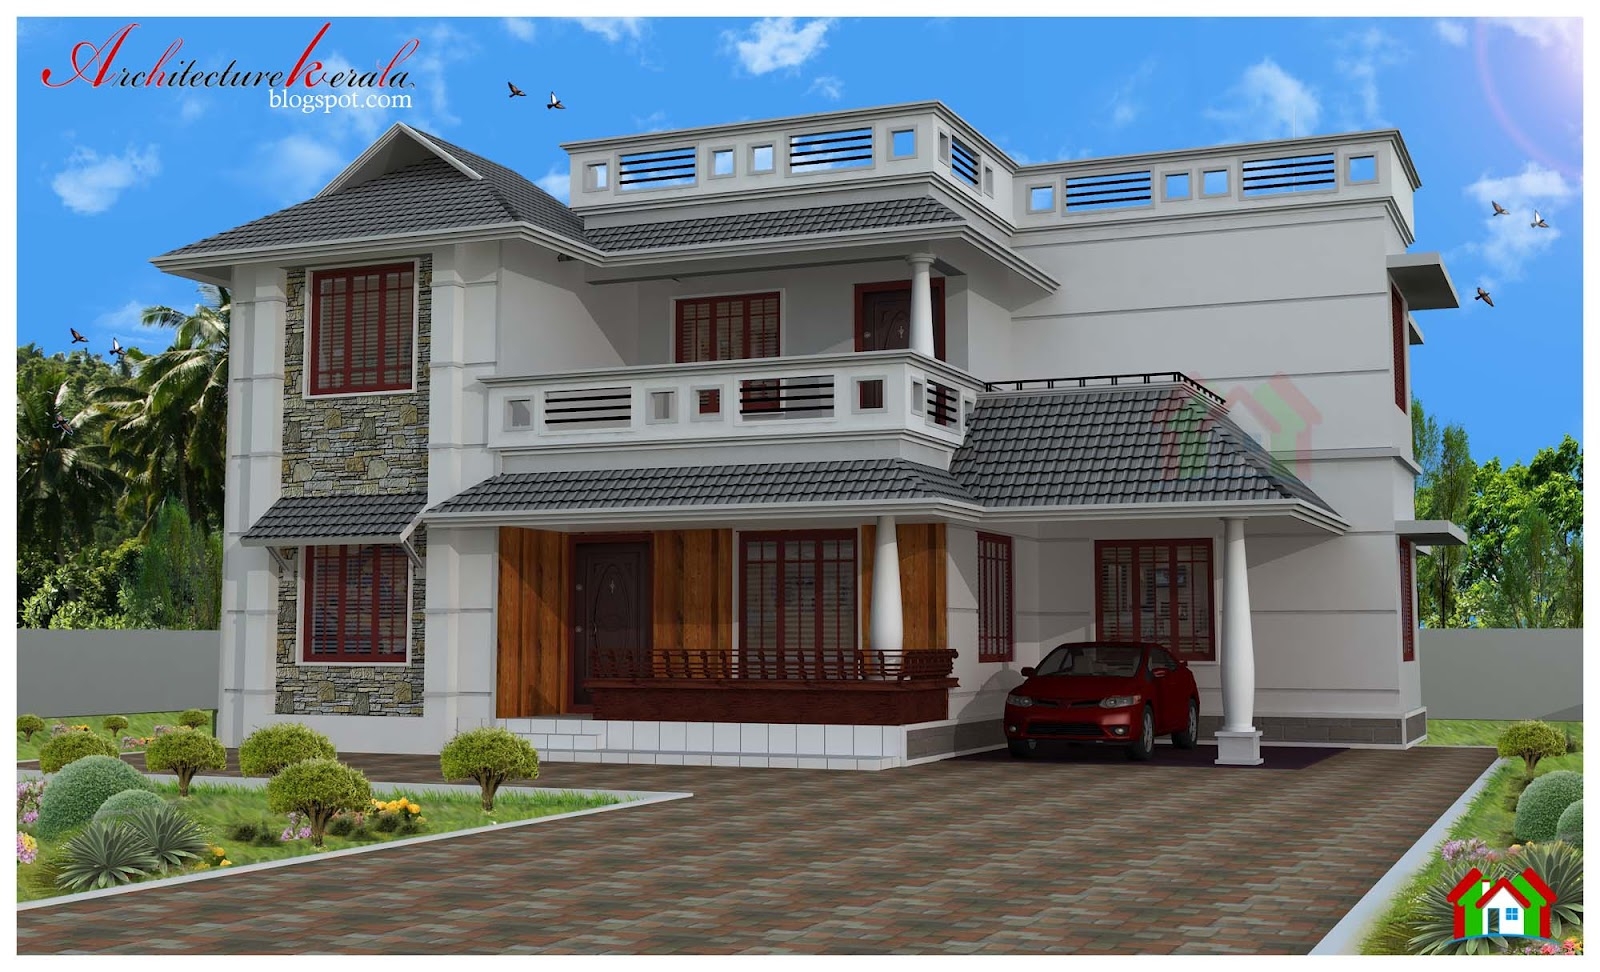 Architecture kerala four bed room house plan for Veedu elevation